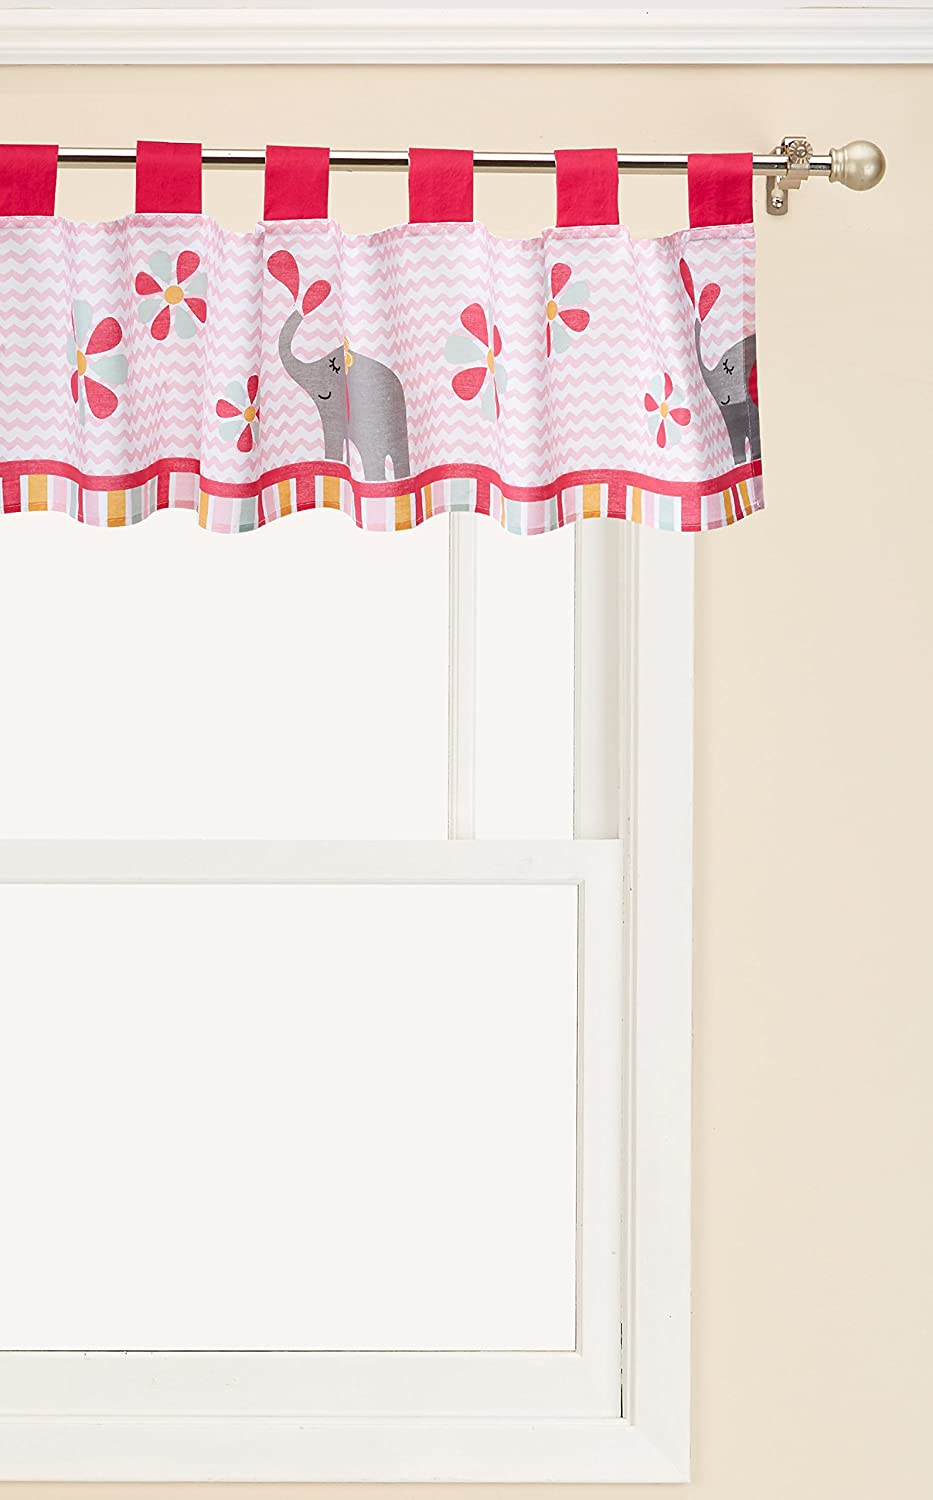 Max NEW before selling ☆ 48% OFF Bedtime Originals Window Valance Sweeties Jungle